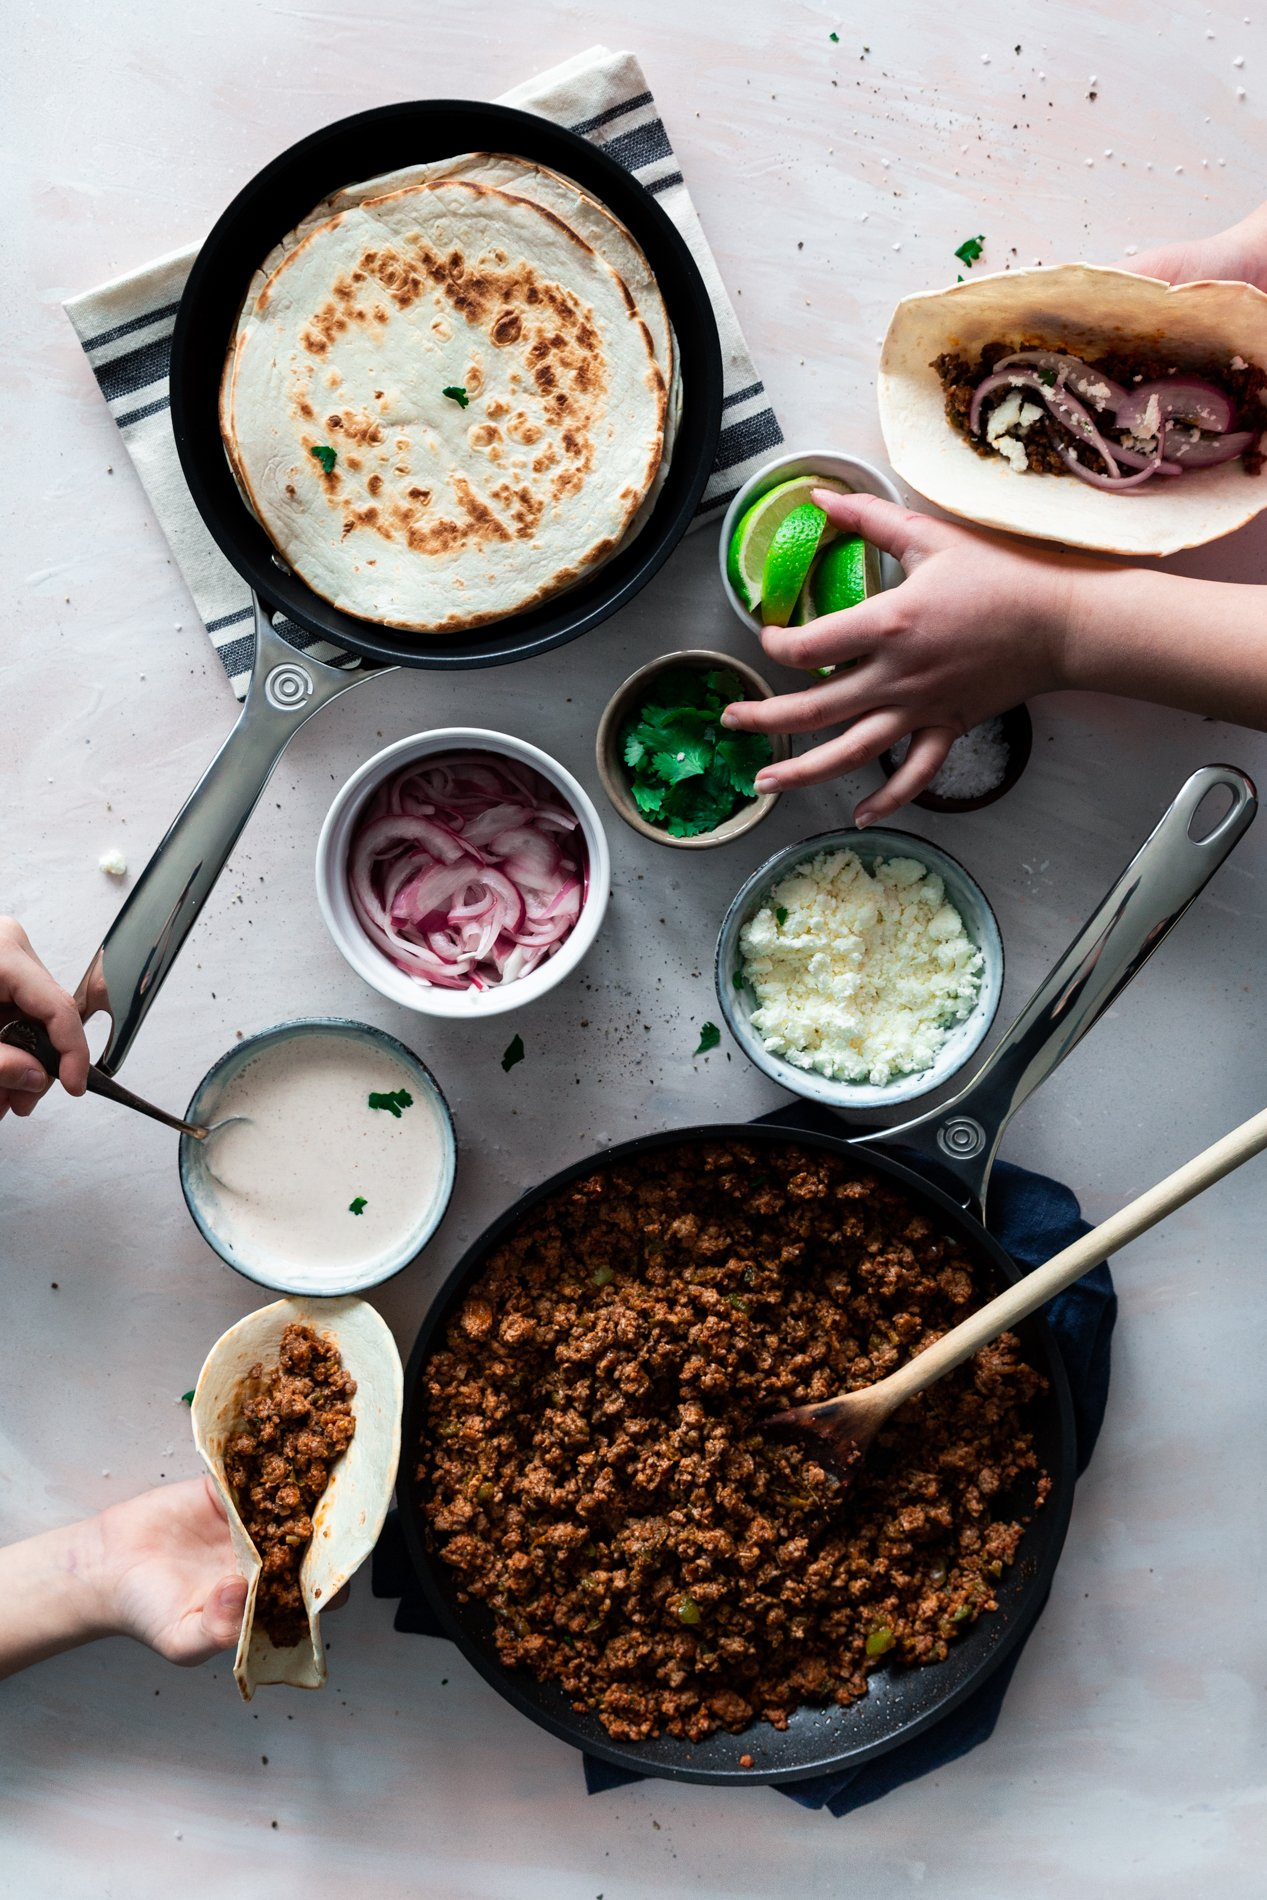 overhead view of two hands dishing out weeknight pork carnitas tacos into tortillas with small bowls of garnishes in the center, by minneapolis food blogger a simple pantry